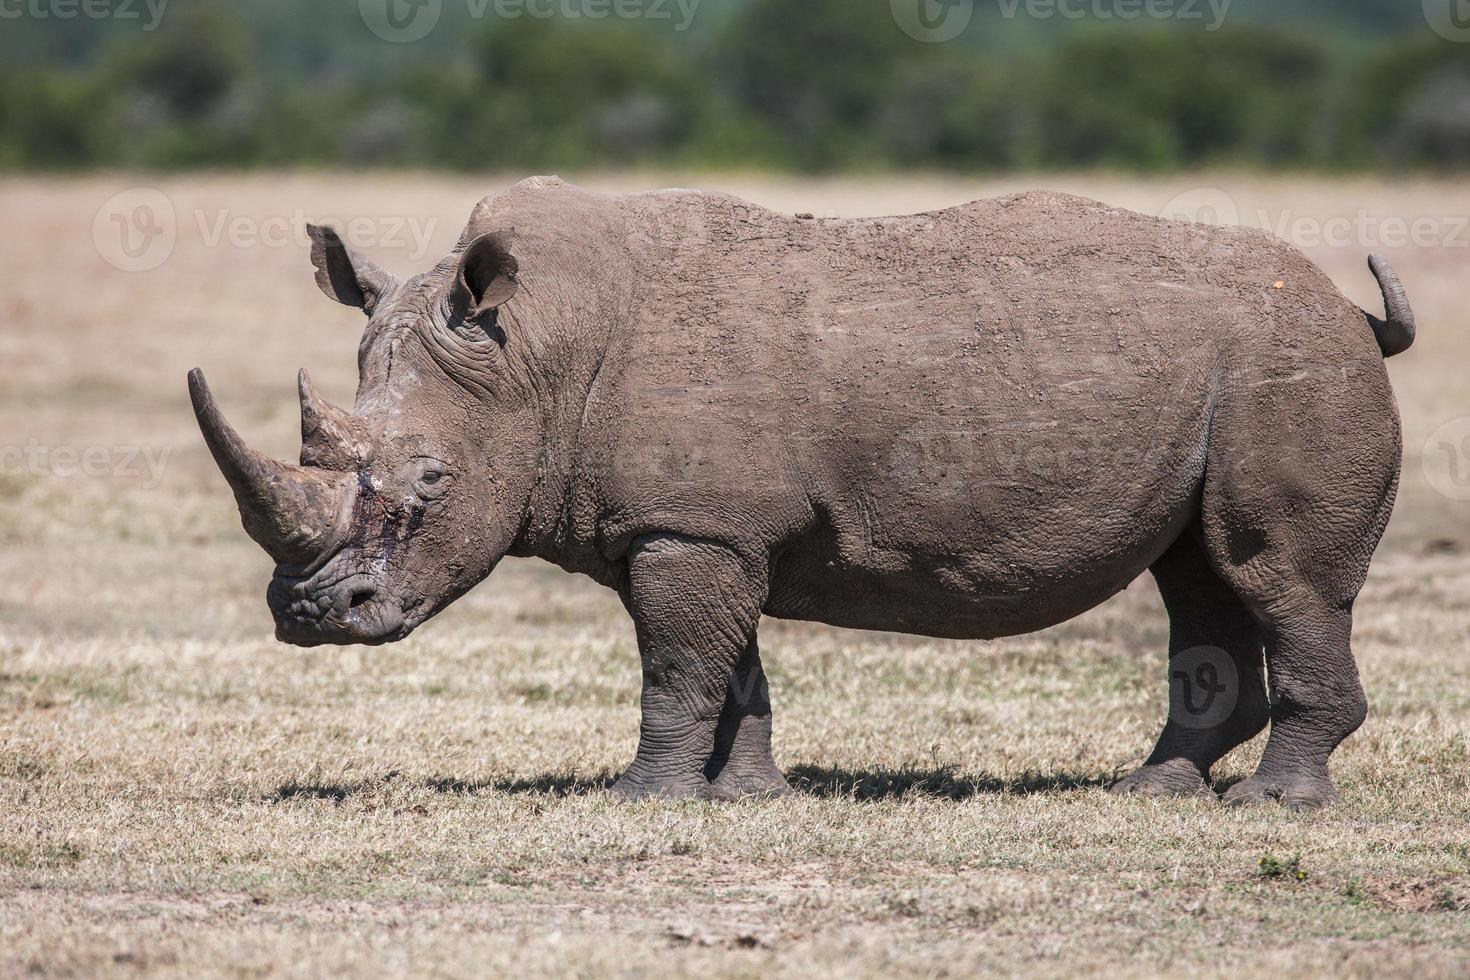 White rhinoceros grazing in the wild, Africa photo